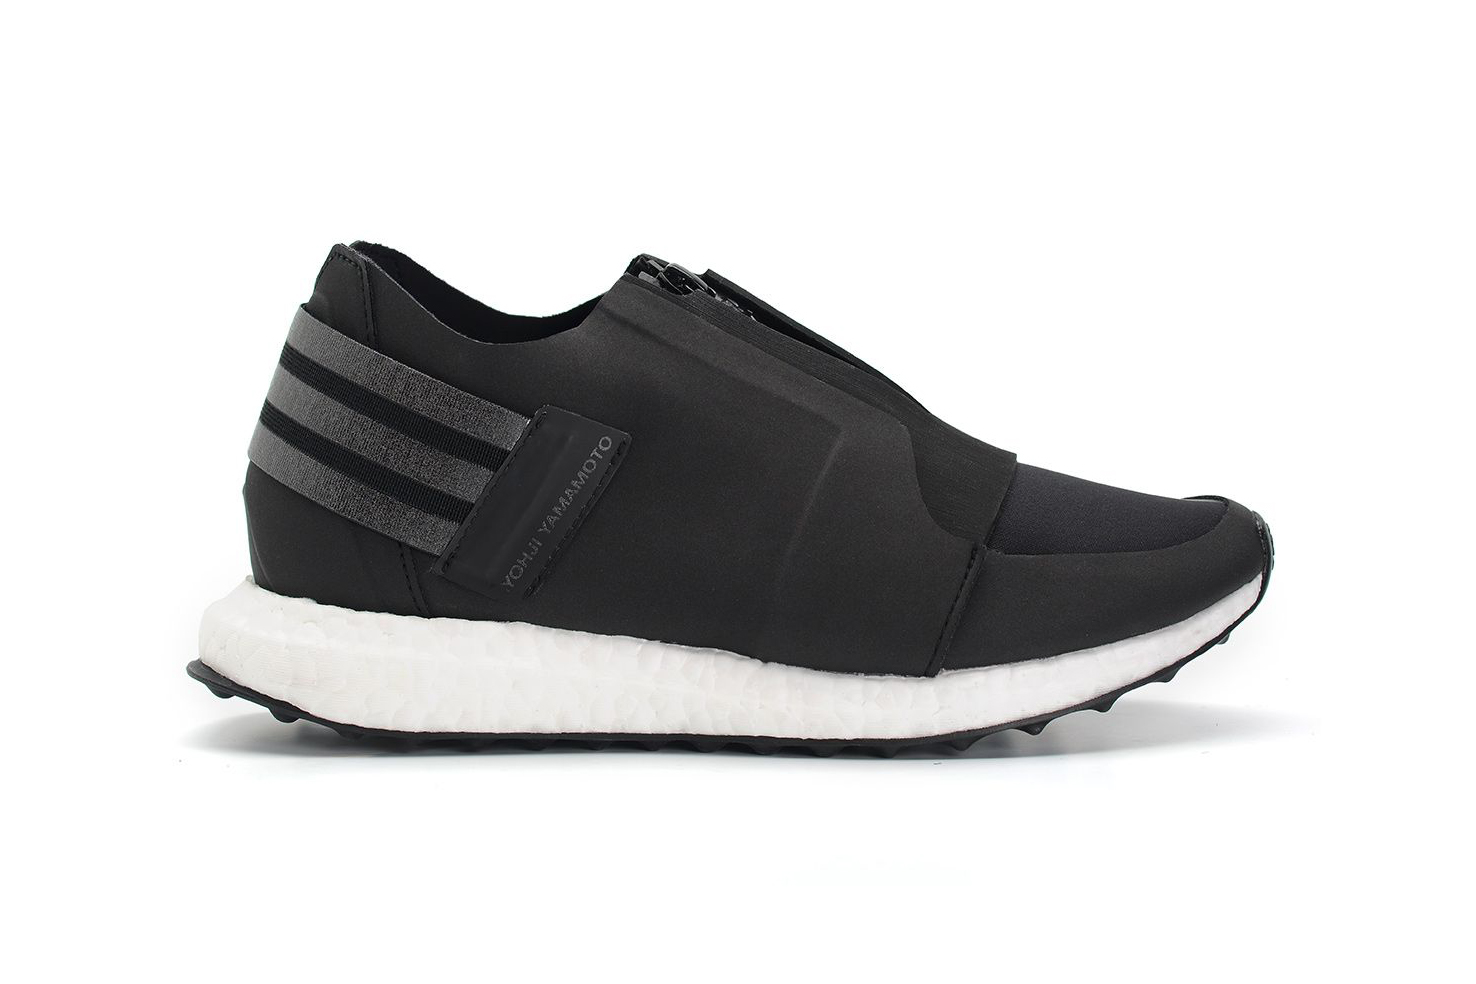 """Y-3 Introduces the X-Ray Zip Low BOOST in """"Core Black"""""""